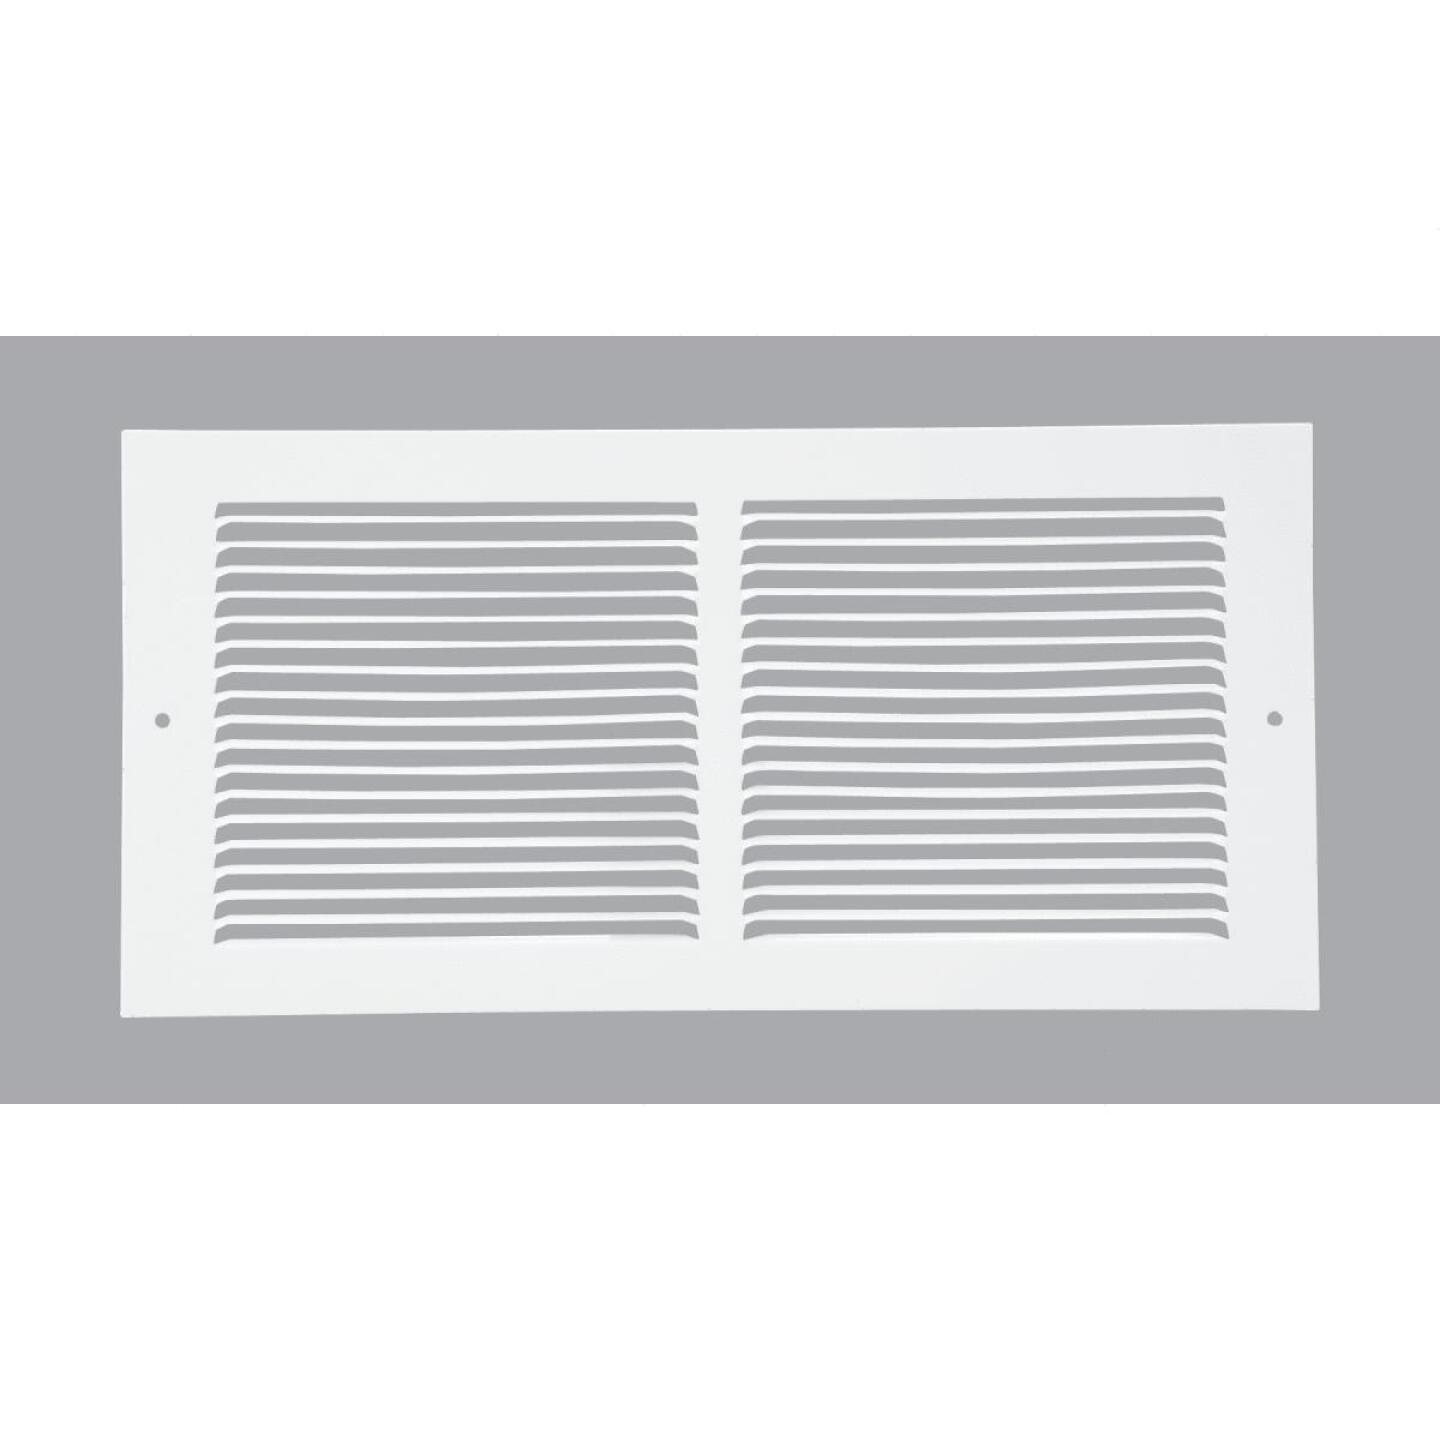 Home Impressions 6 In. x 14 In. White Steel Baseboard Grille Image 1